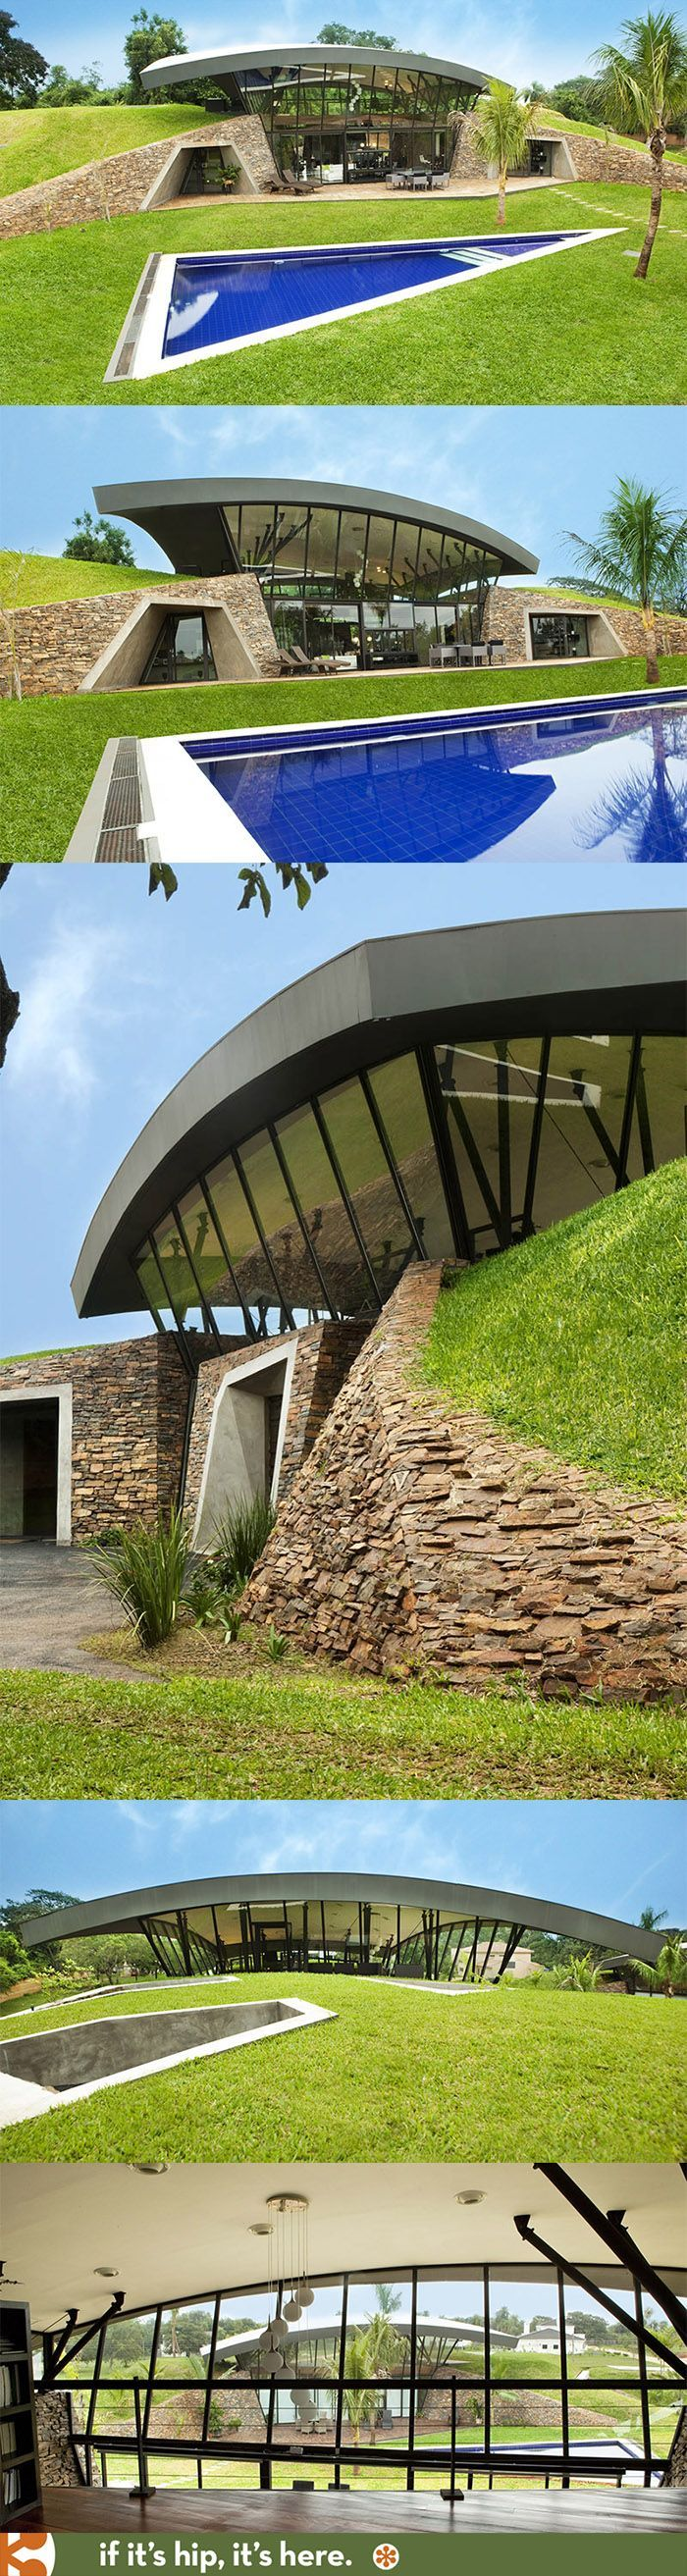 Two partially submerged modern homes with arched living roofs make a green haven in Paraguay.